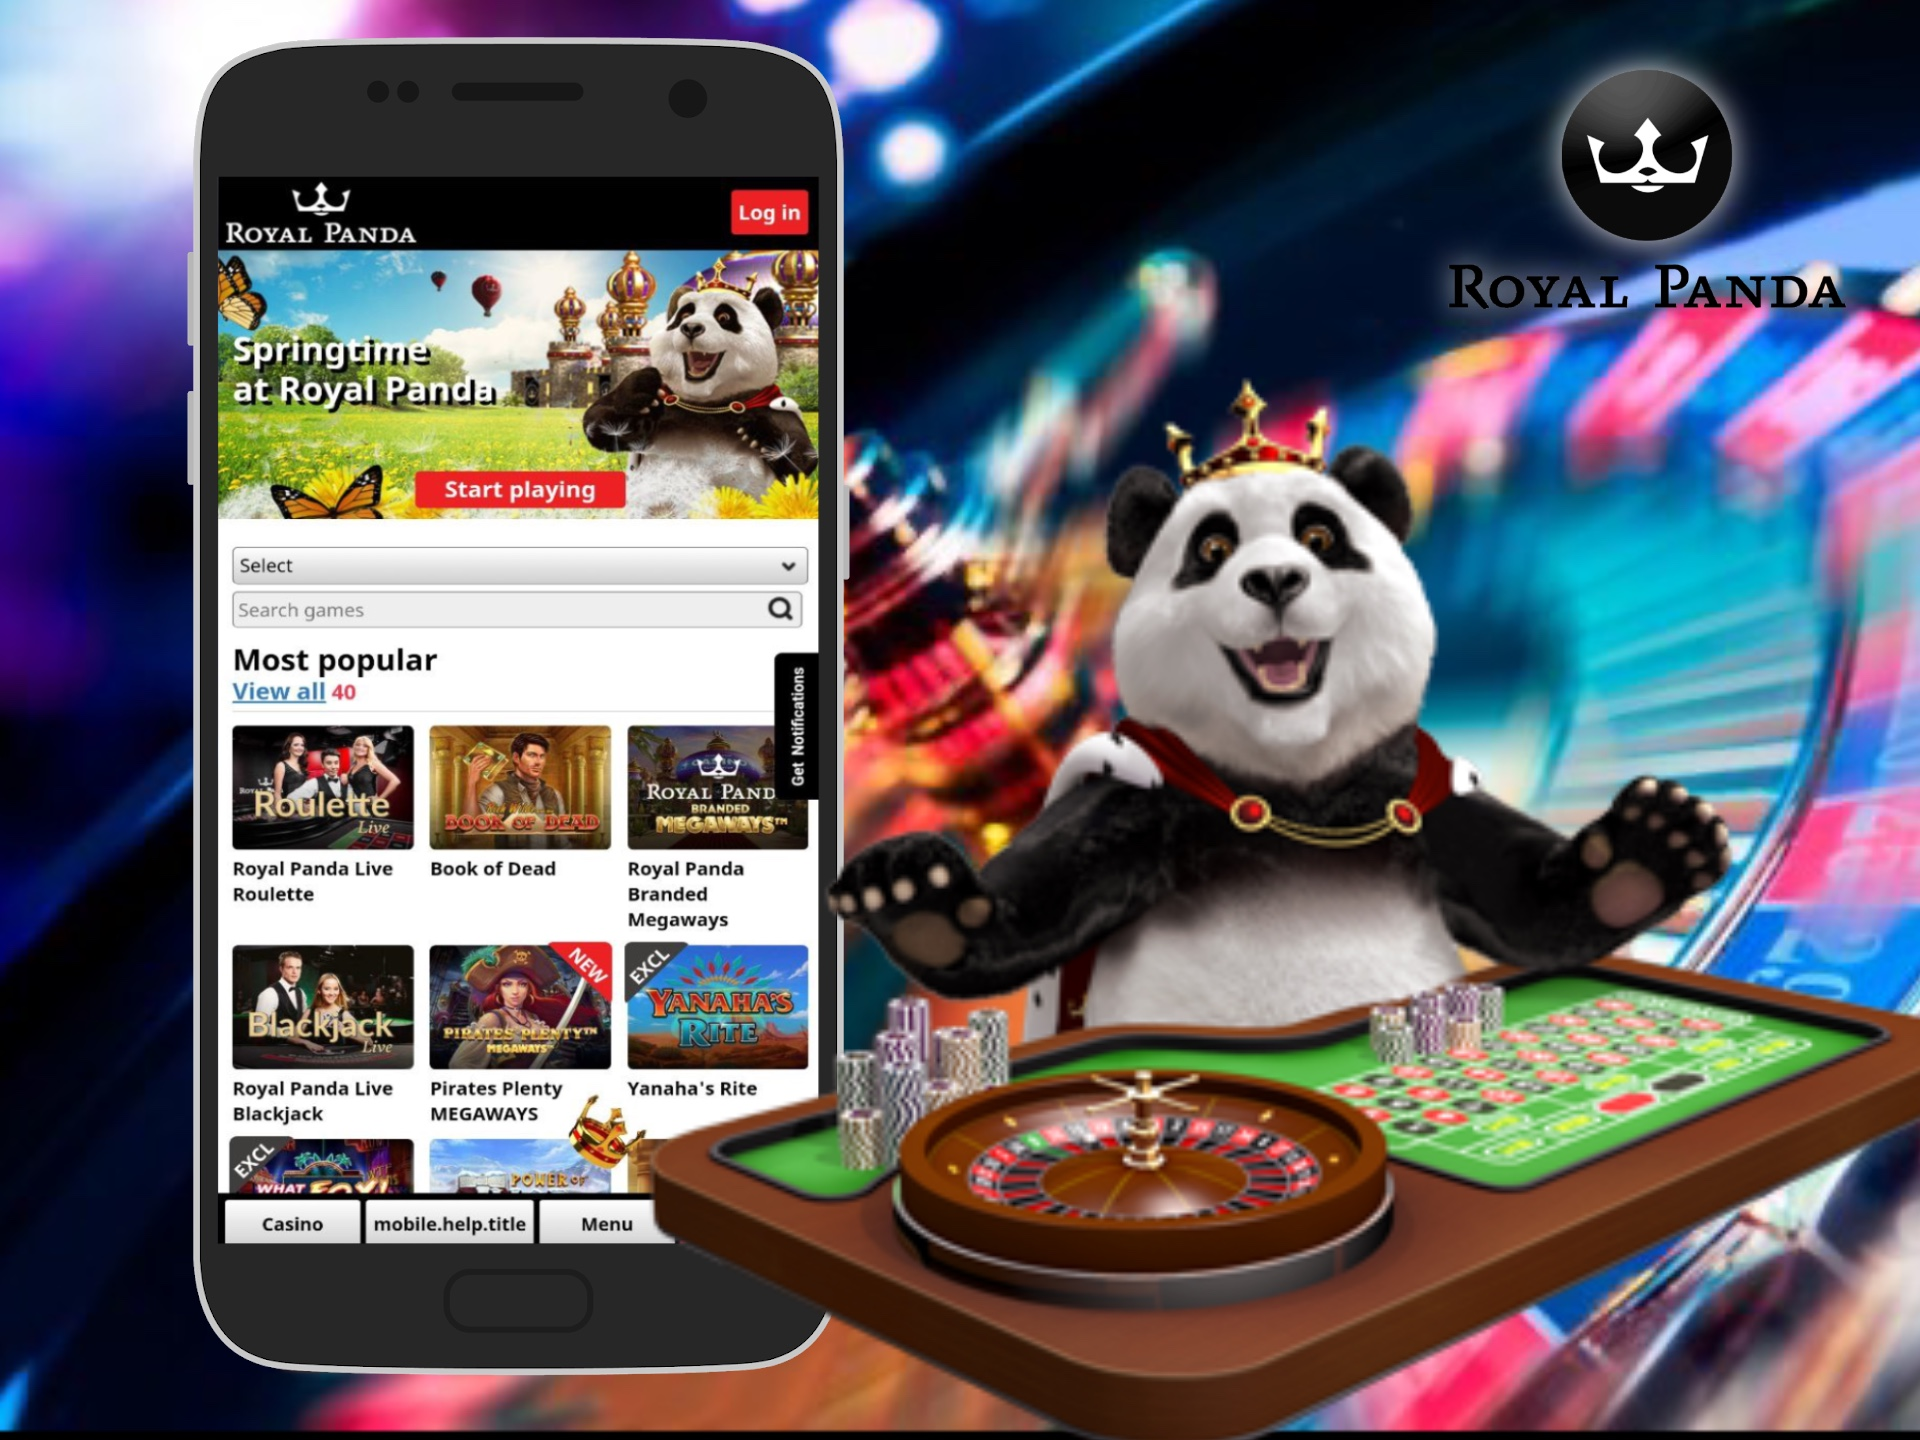 You can use a mobile version instead of Royal Panda app, if you do not want to download any software.